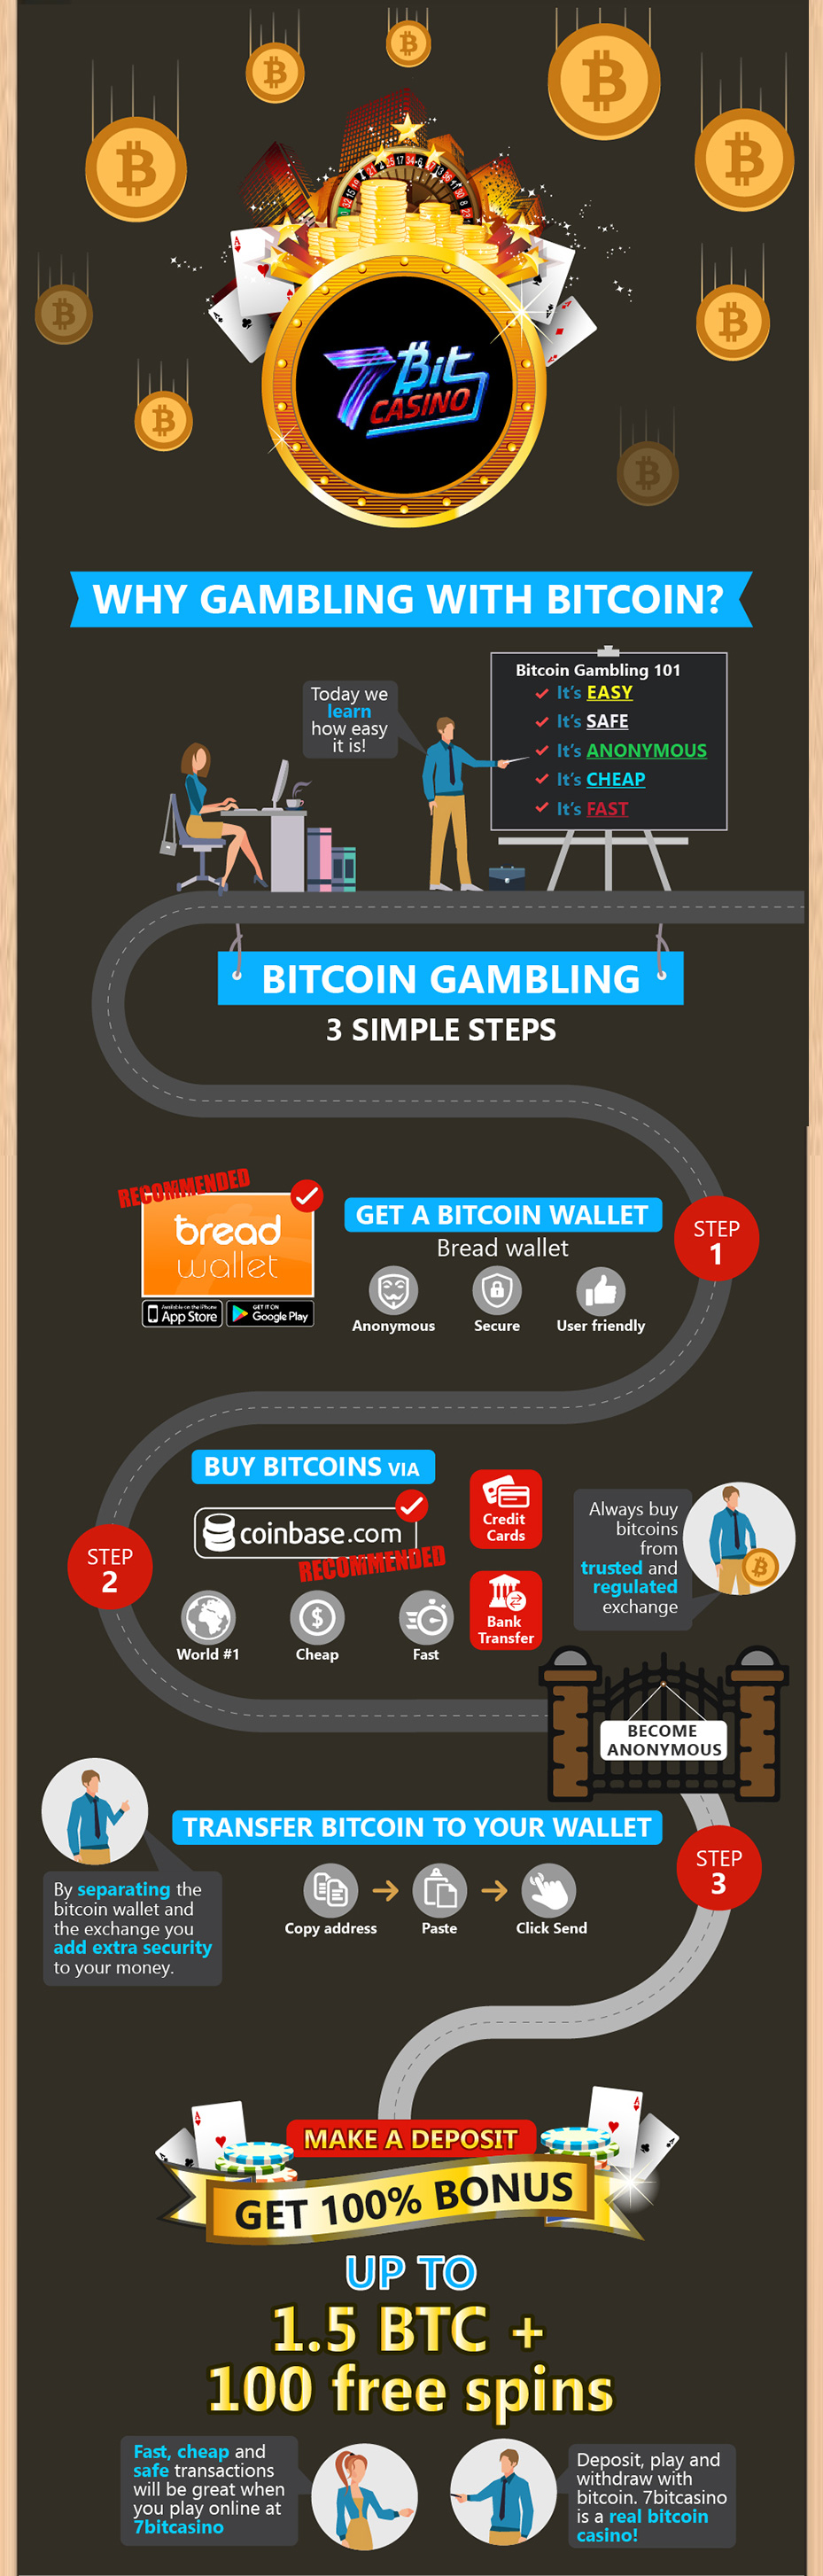 is bitcoin casino real